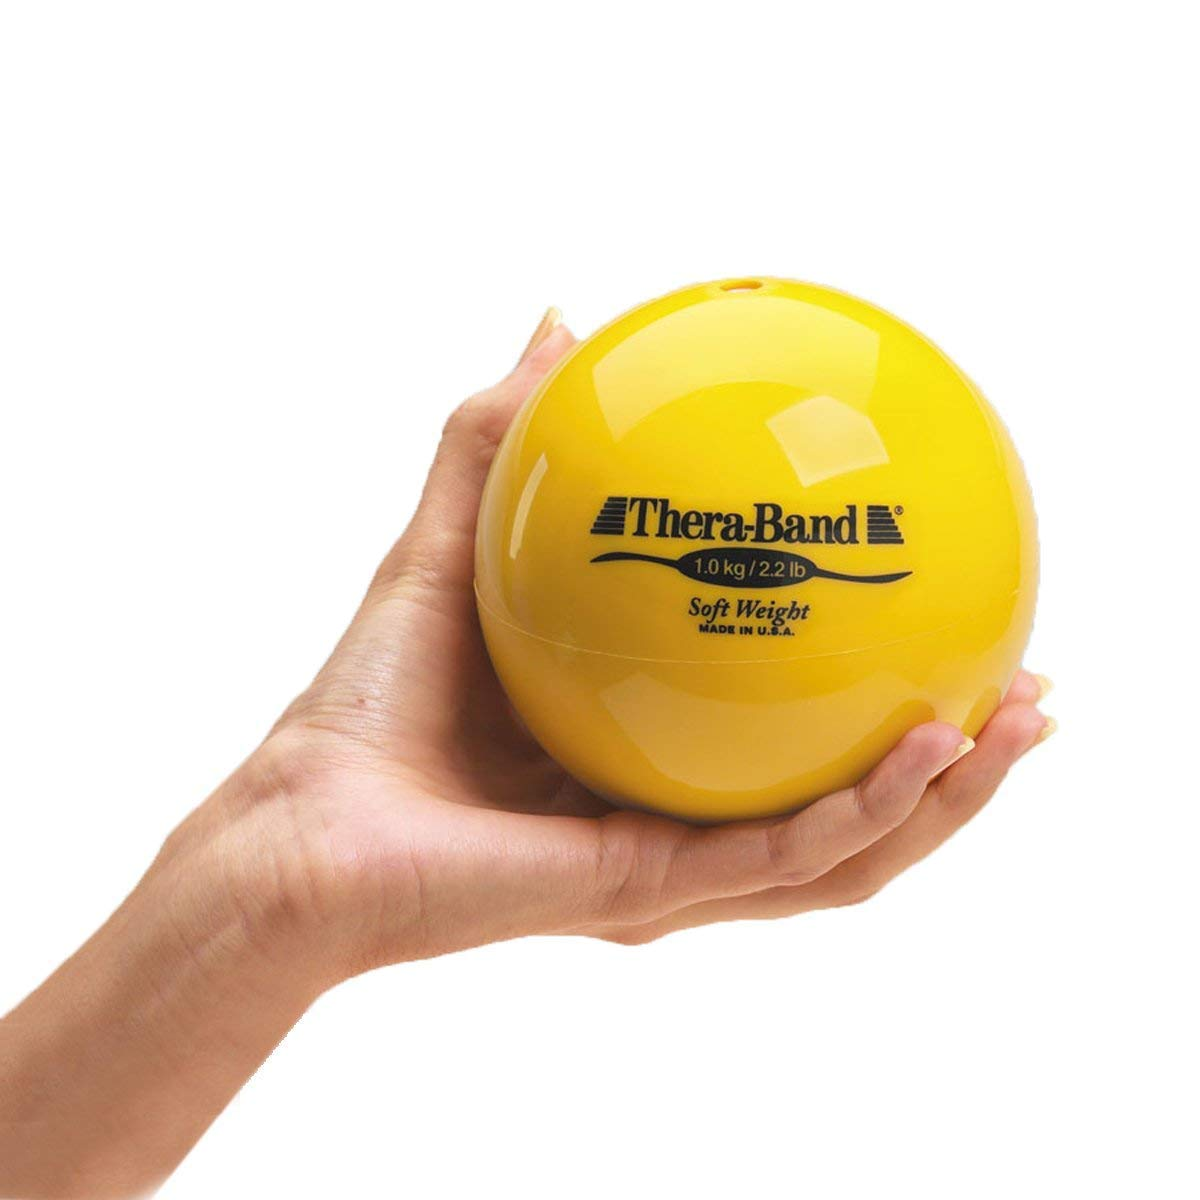 TheraBand Soft Weight, 4.5'' Diameter Hand Held Ball Shaped Isotonic Weighted Ball for Isometric Workouts, Strength Training and Rehab Exercises, Shoulder Strengthening and Surgery Rehabilitation, Yellow, 2.2 pound